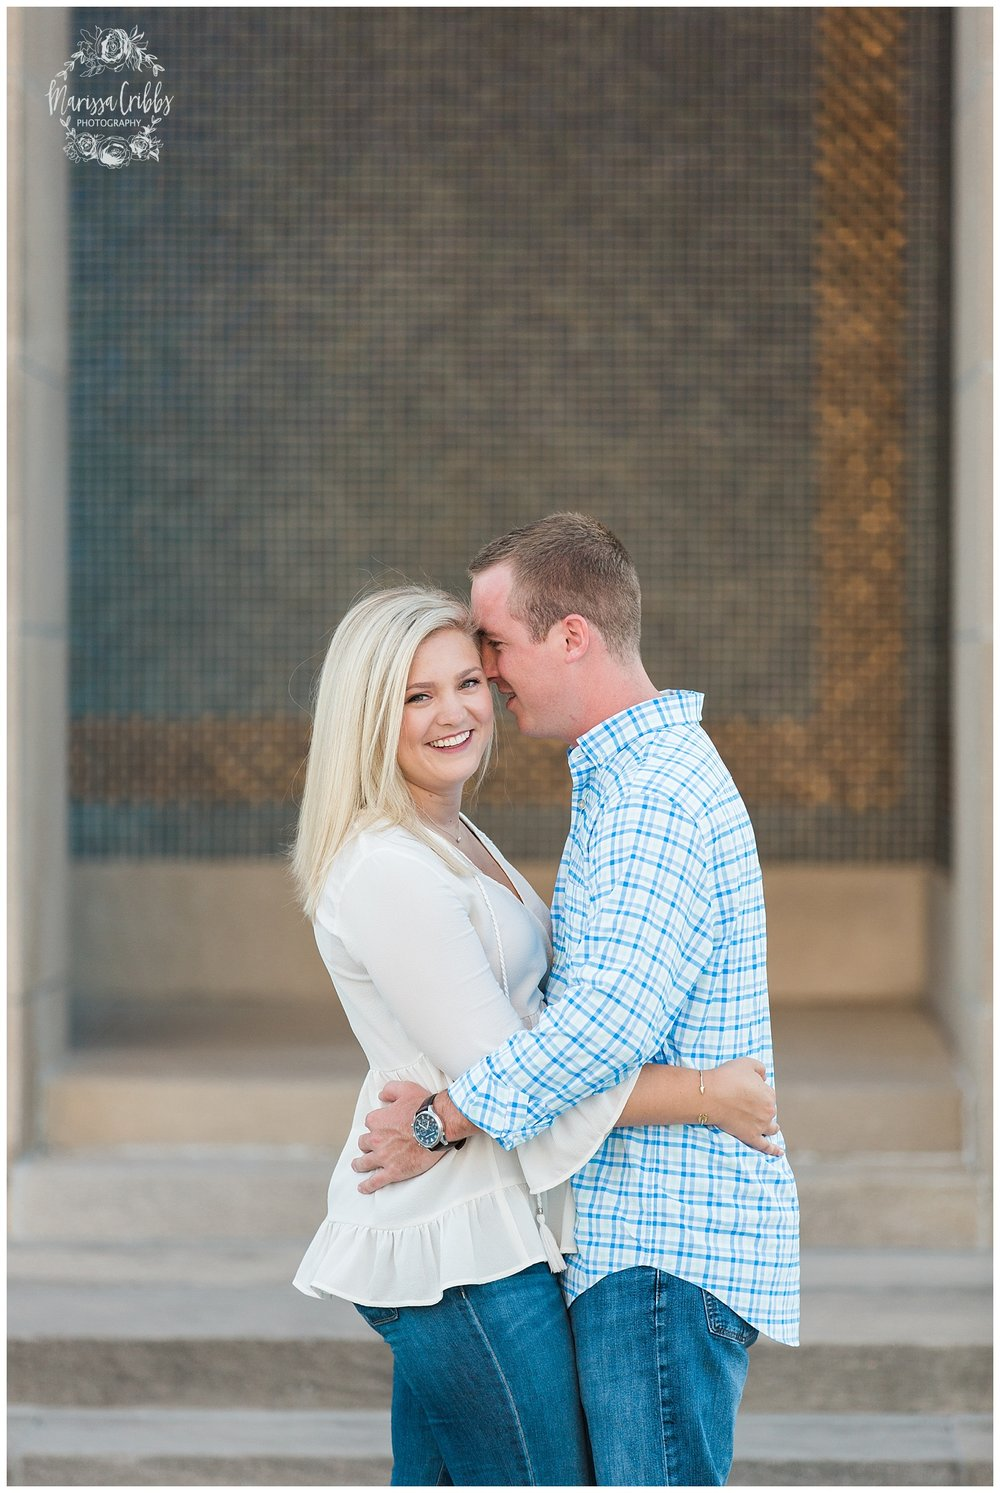 MADISON & ZACH ENGAGEMENT | LOOSE PARK ENGAGEMENT PHOTOGRAPHY | UNION STATION PHOTOGRAPHY | LIBERTY MEMORIAL PHOTOGRAPHY | MARISSA CRIBBS PHOTOGRAPHY_2312.jpg